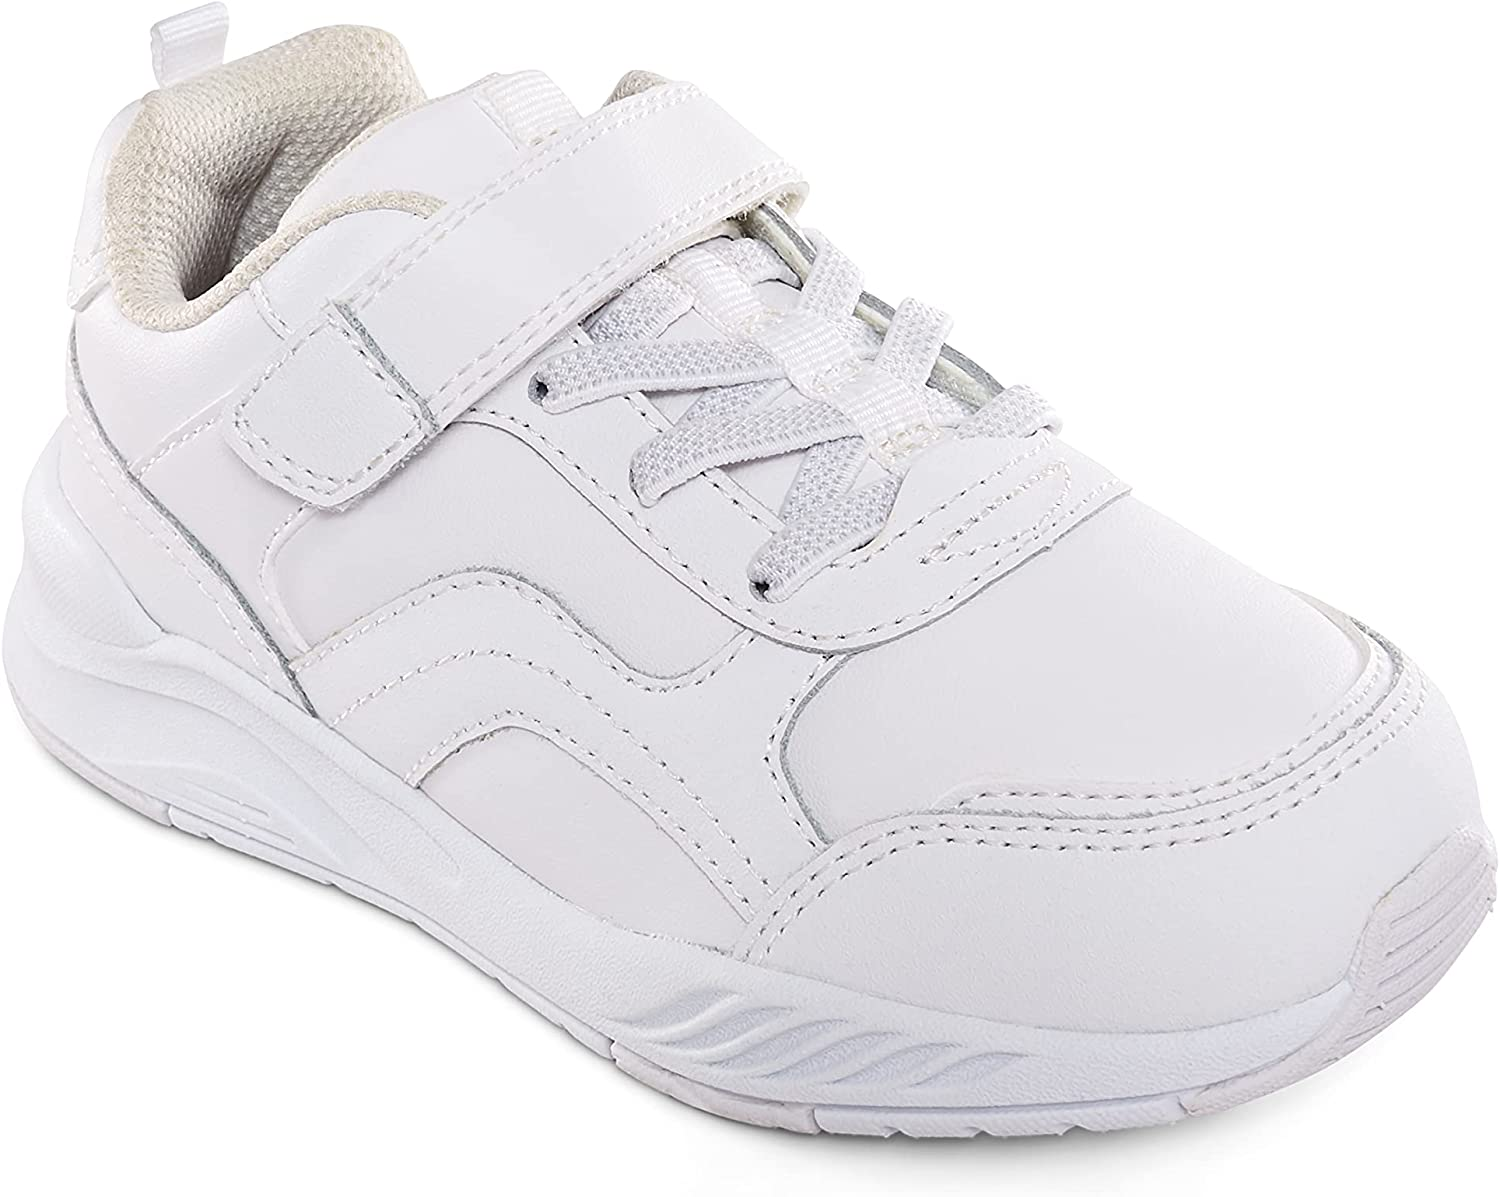 Max 80% OFF Stride Rite Made2Play Brighton Sneaker 11 Unisex White Latest item Wide US